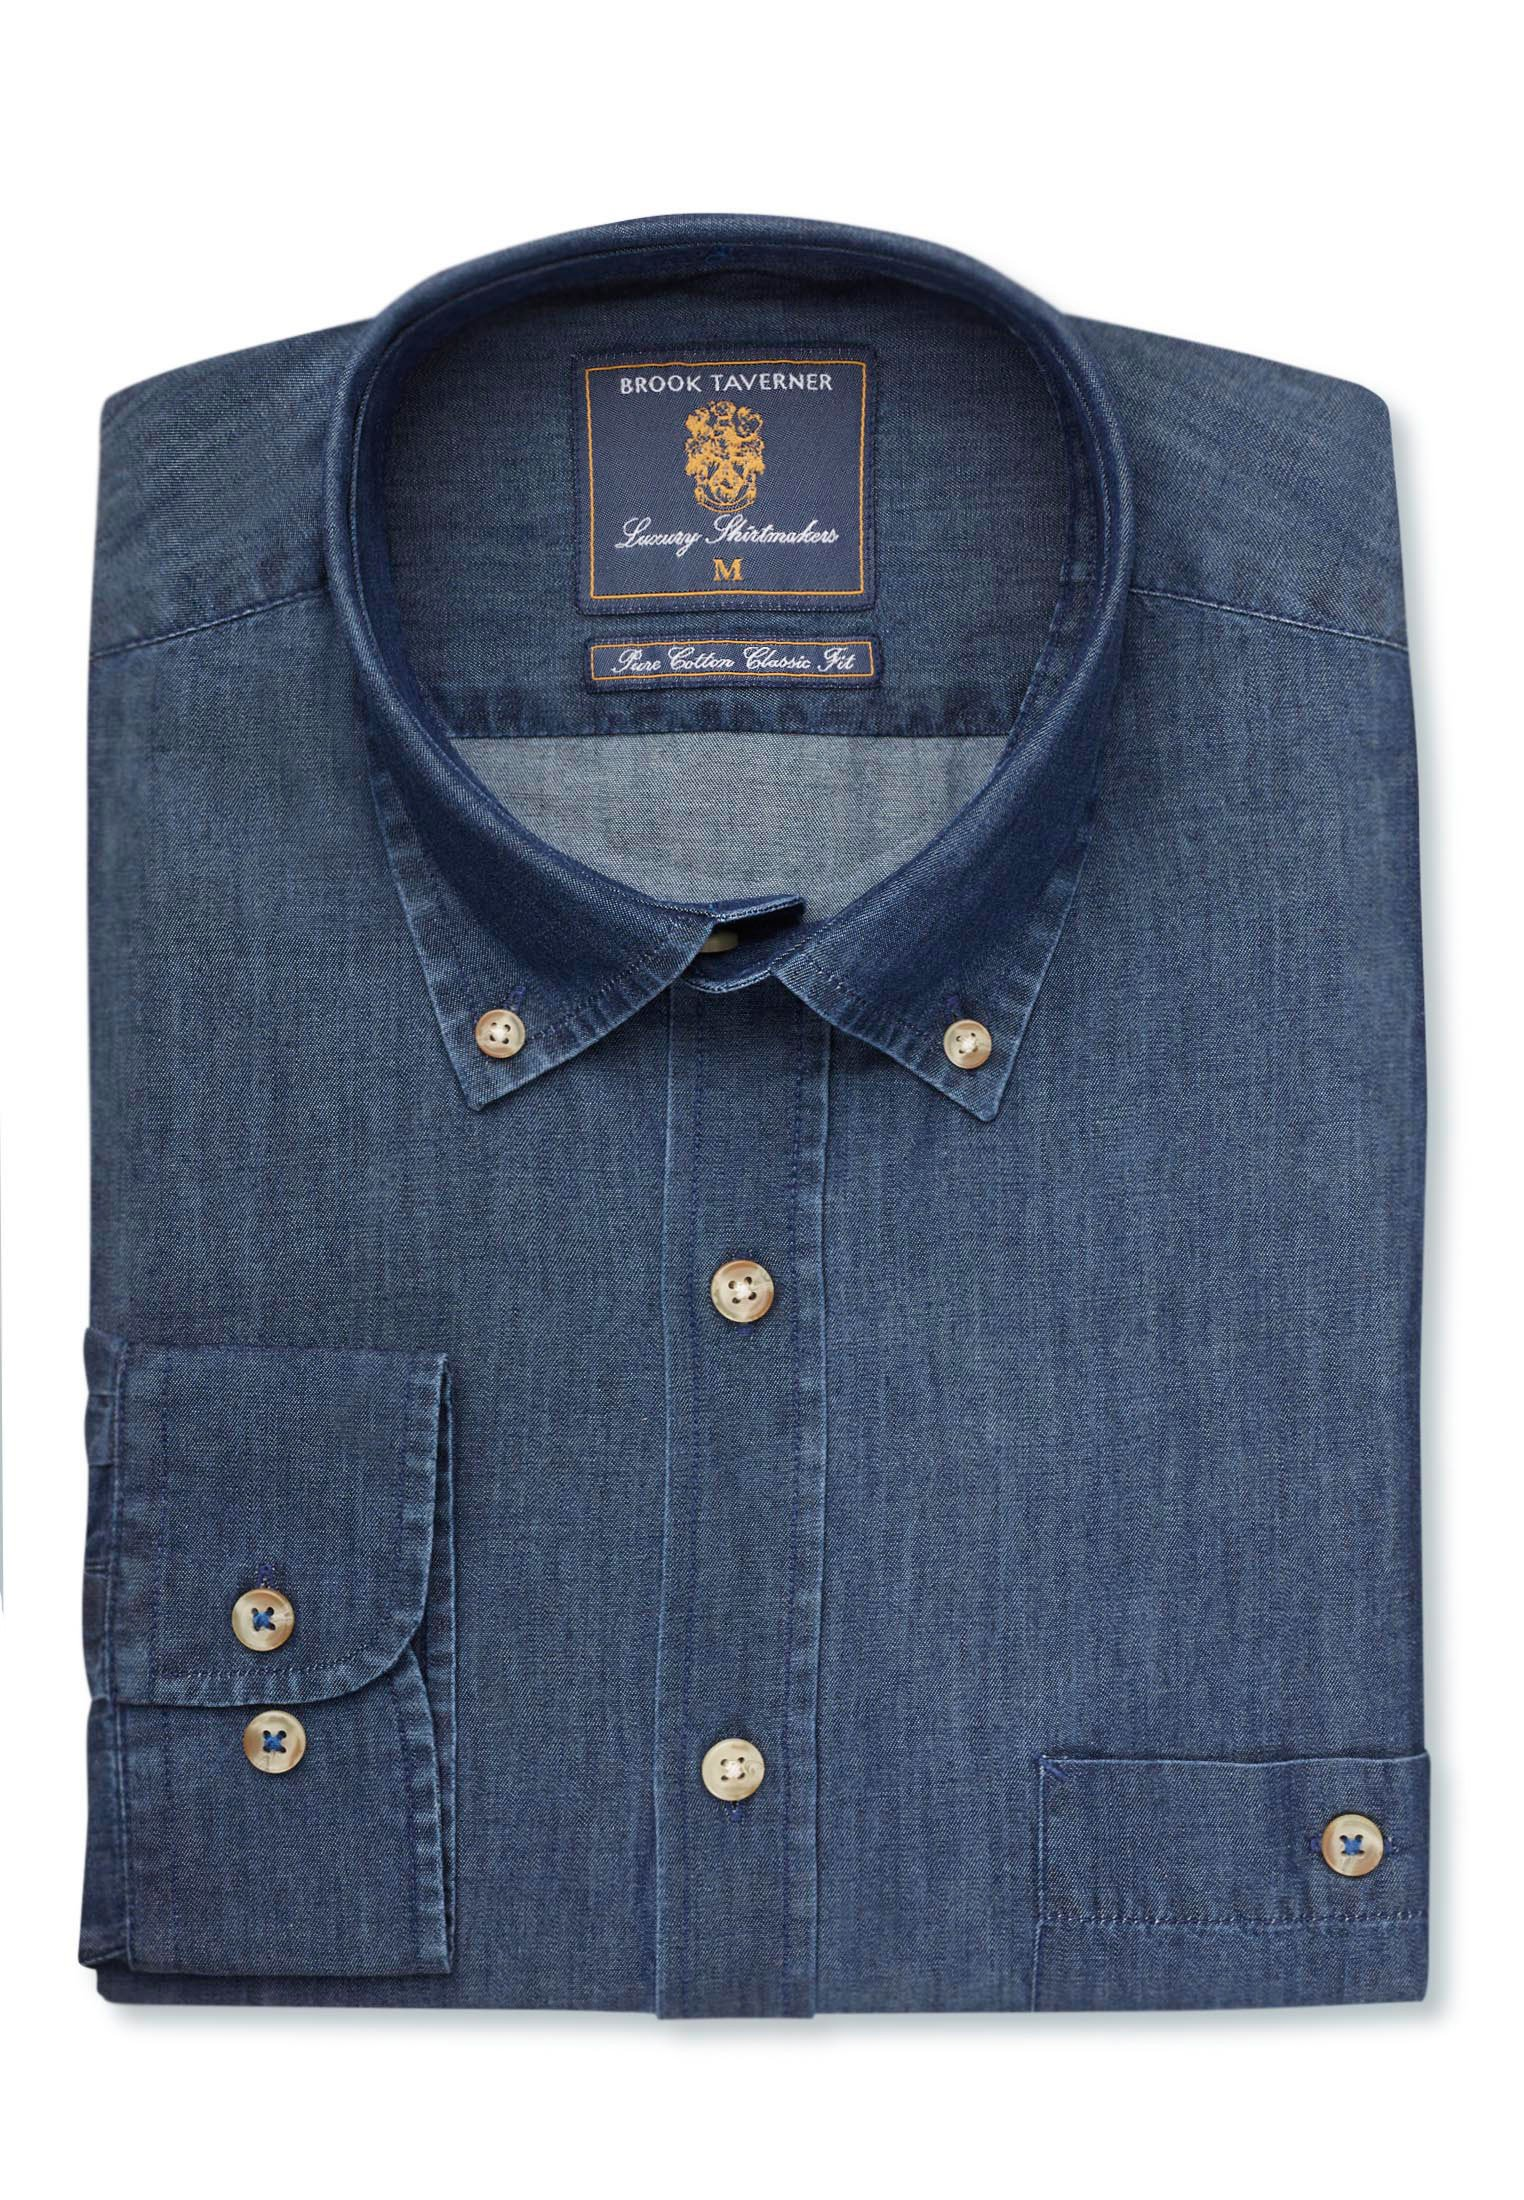 Brook Taverner Classic And Tailored Fit Navy Chambray Cotton Shirt